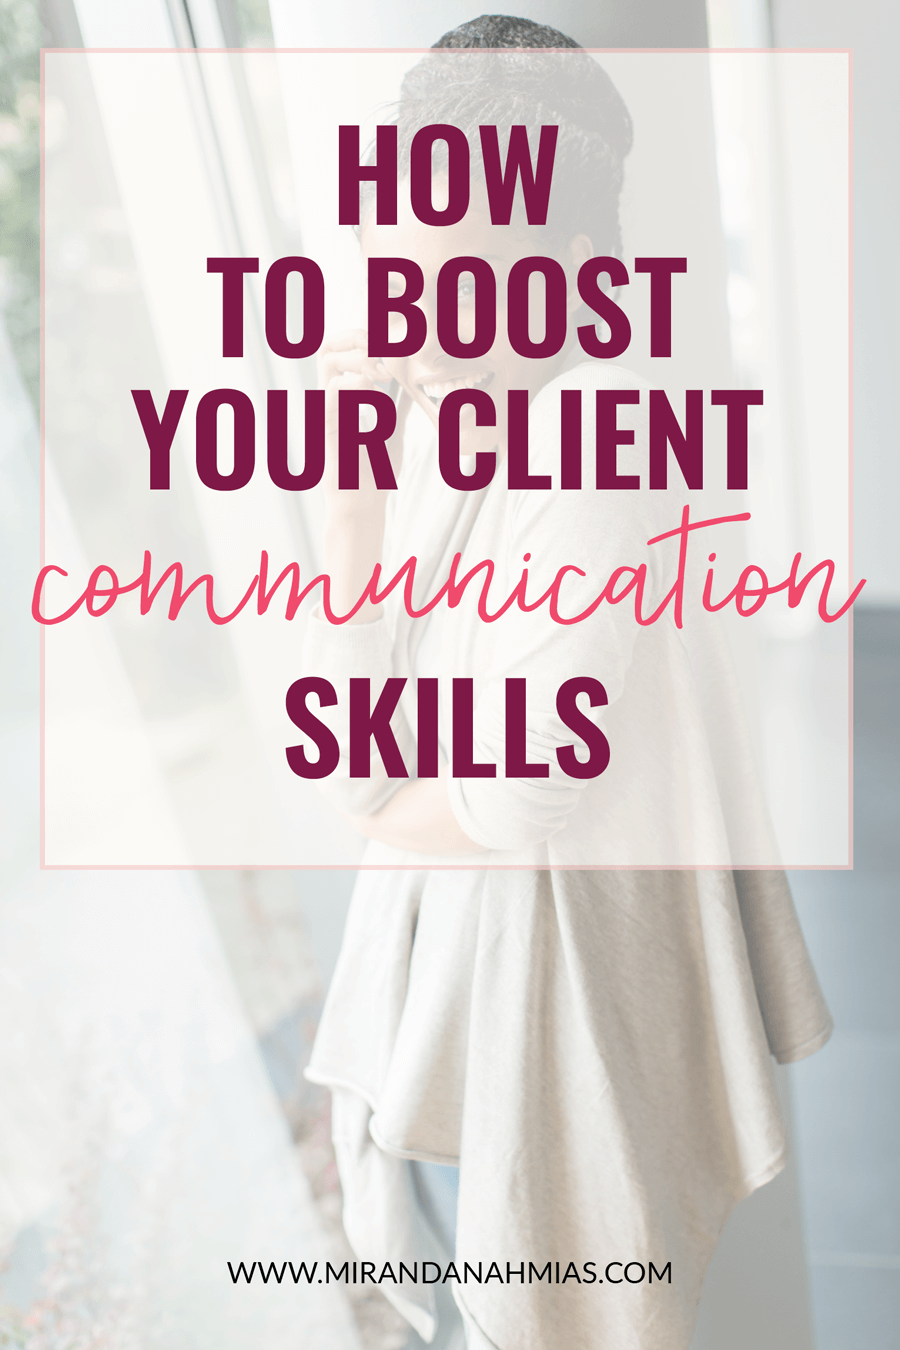 How to Boost Your Client Communication Skills | Miranda Nahmias & Co. Systematic Marketing for Female Service Providers